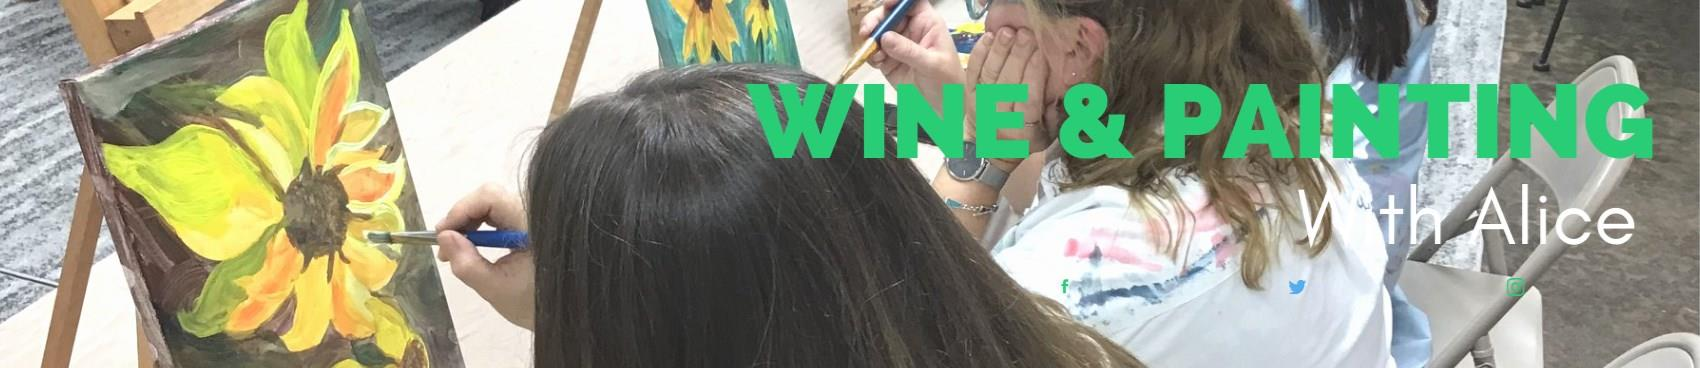 Purchase Tickets to Wine & Painting with Alice Waugh at Grinder's Switch Winery on CellarPass